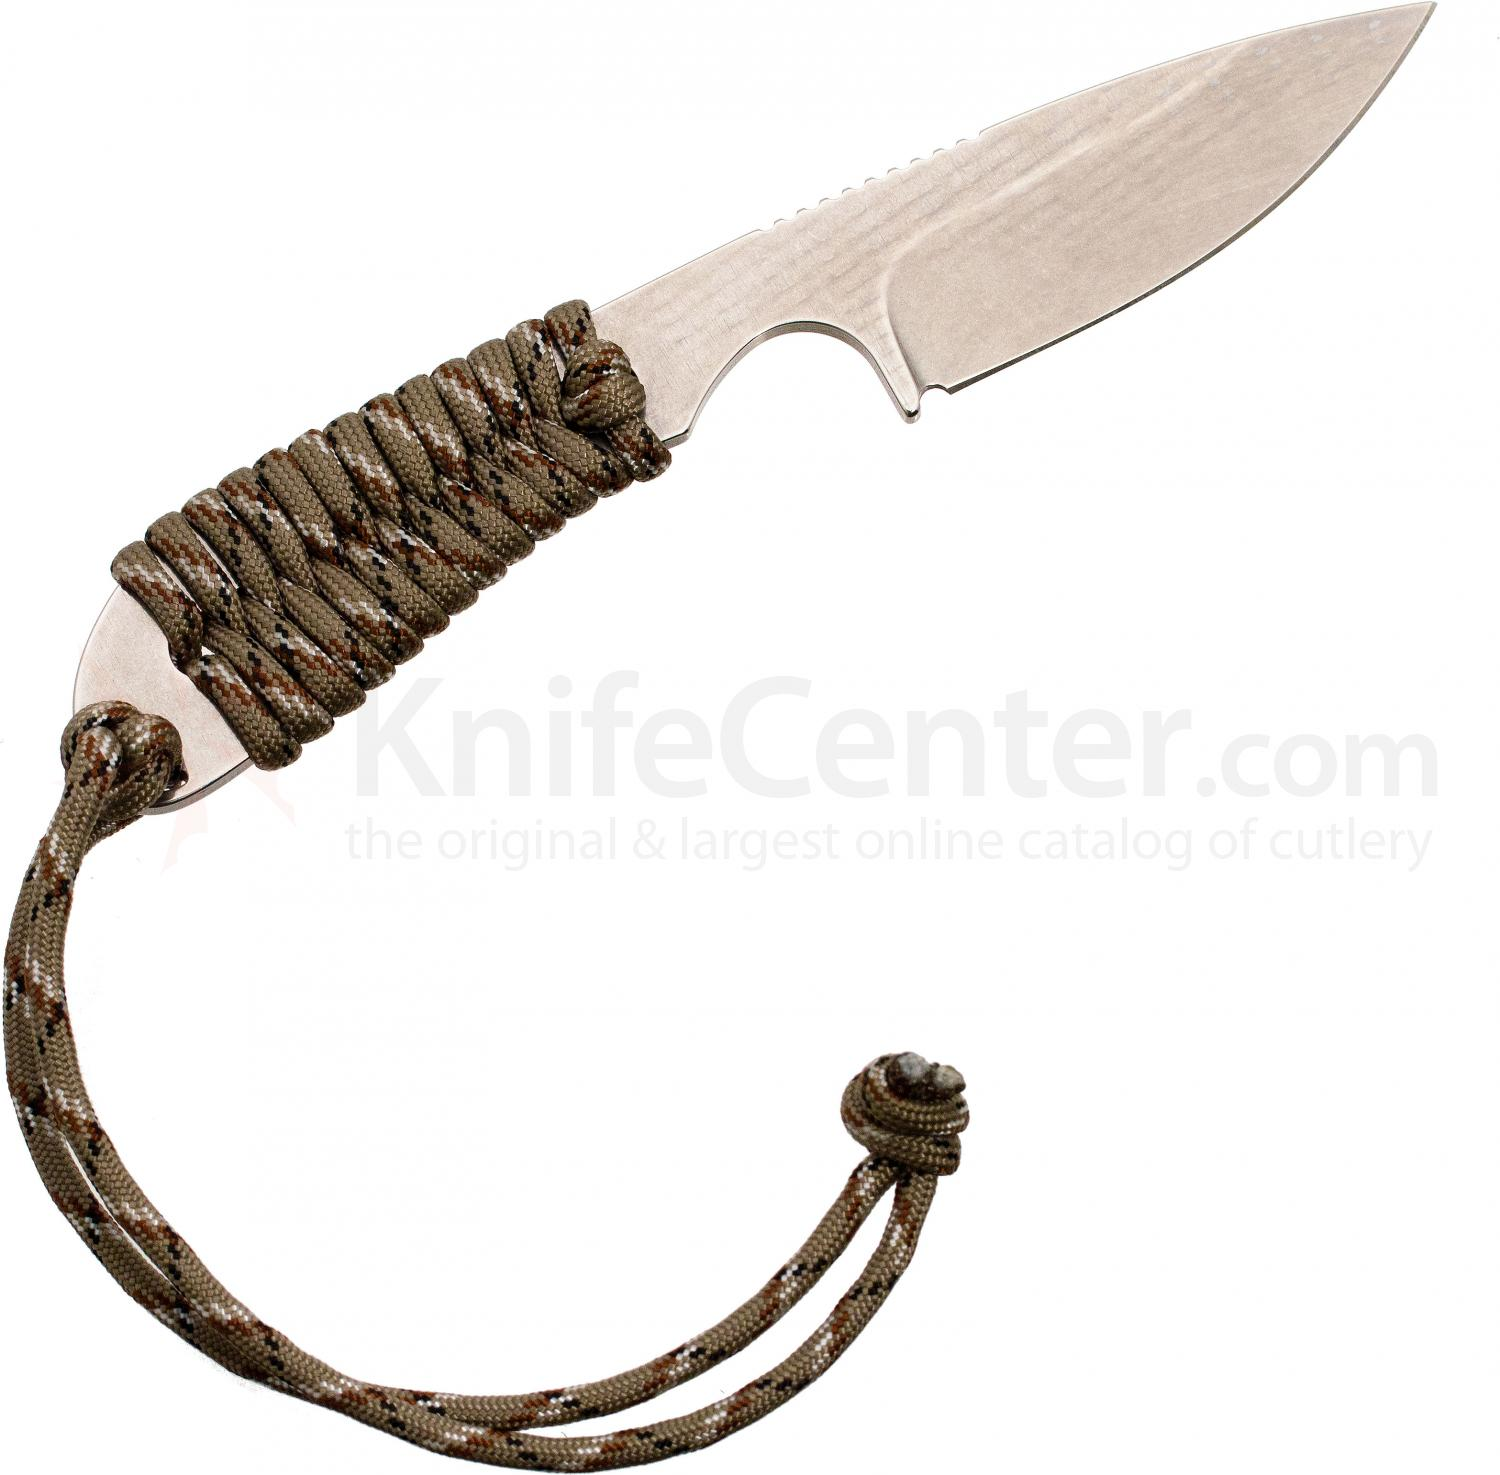 White River Knives Backpacker Fixed 3.25 inch S30V Blade, Desert Camo Paracord Handle, Kydex Sheath